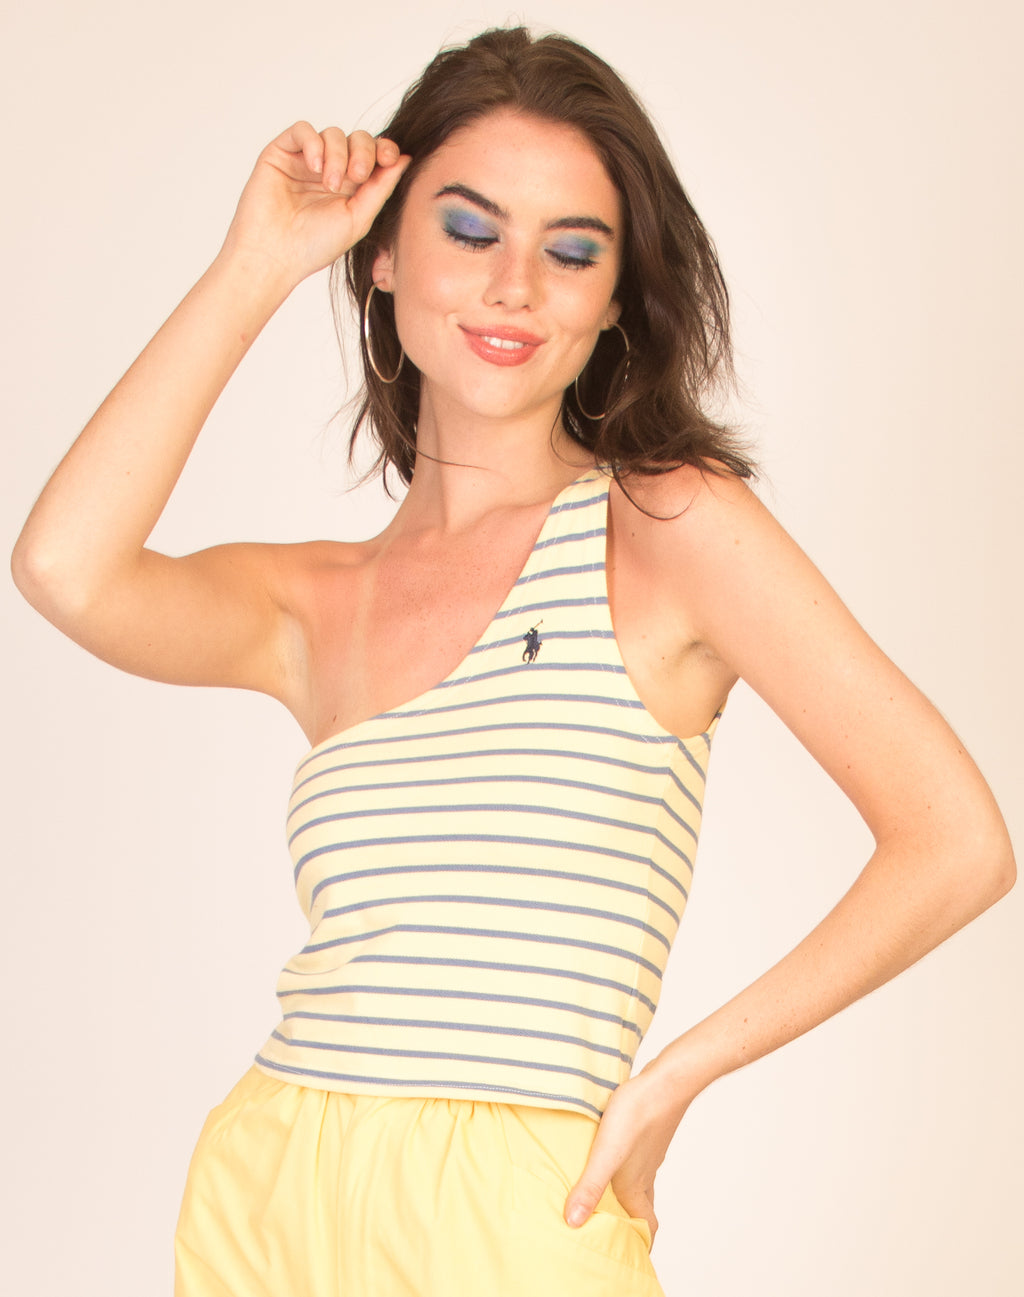 RALPH LAUREN YELLOW STRIPED AVA TOP